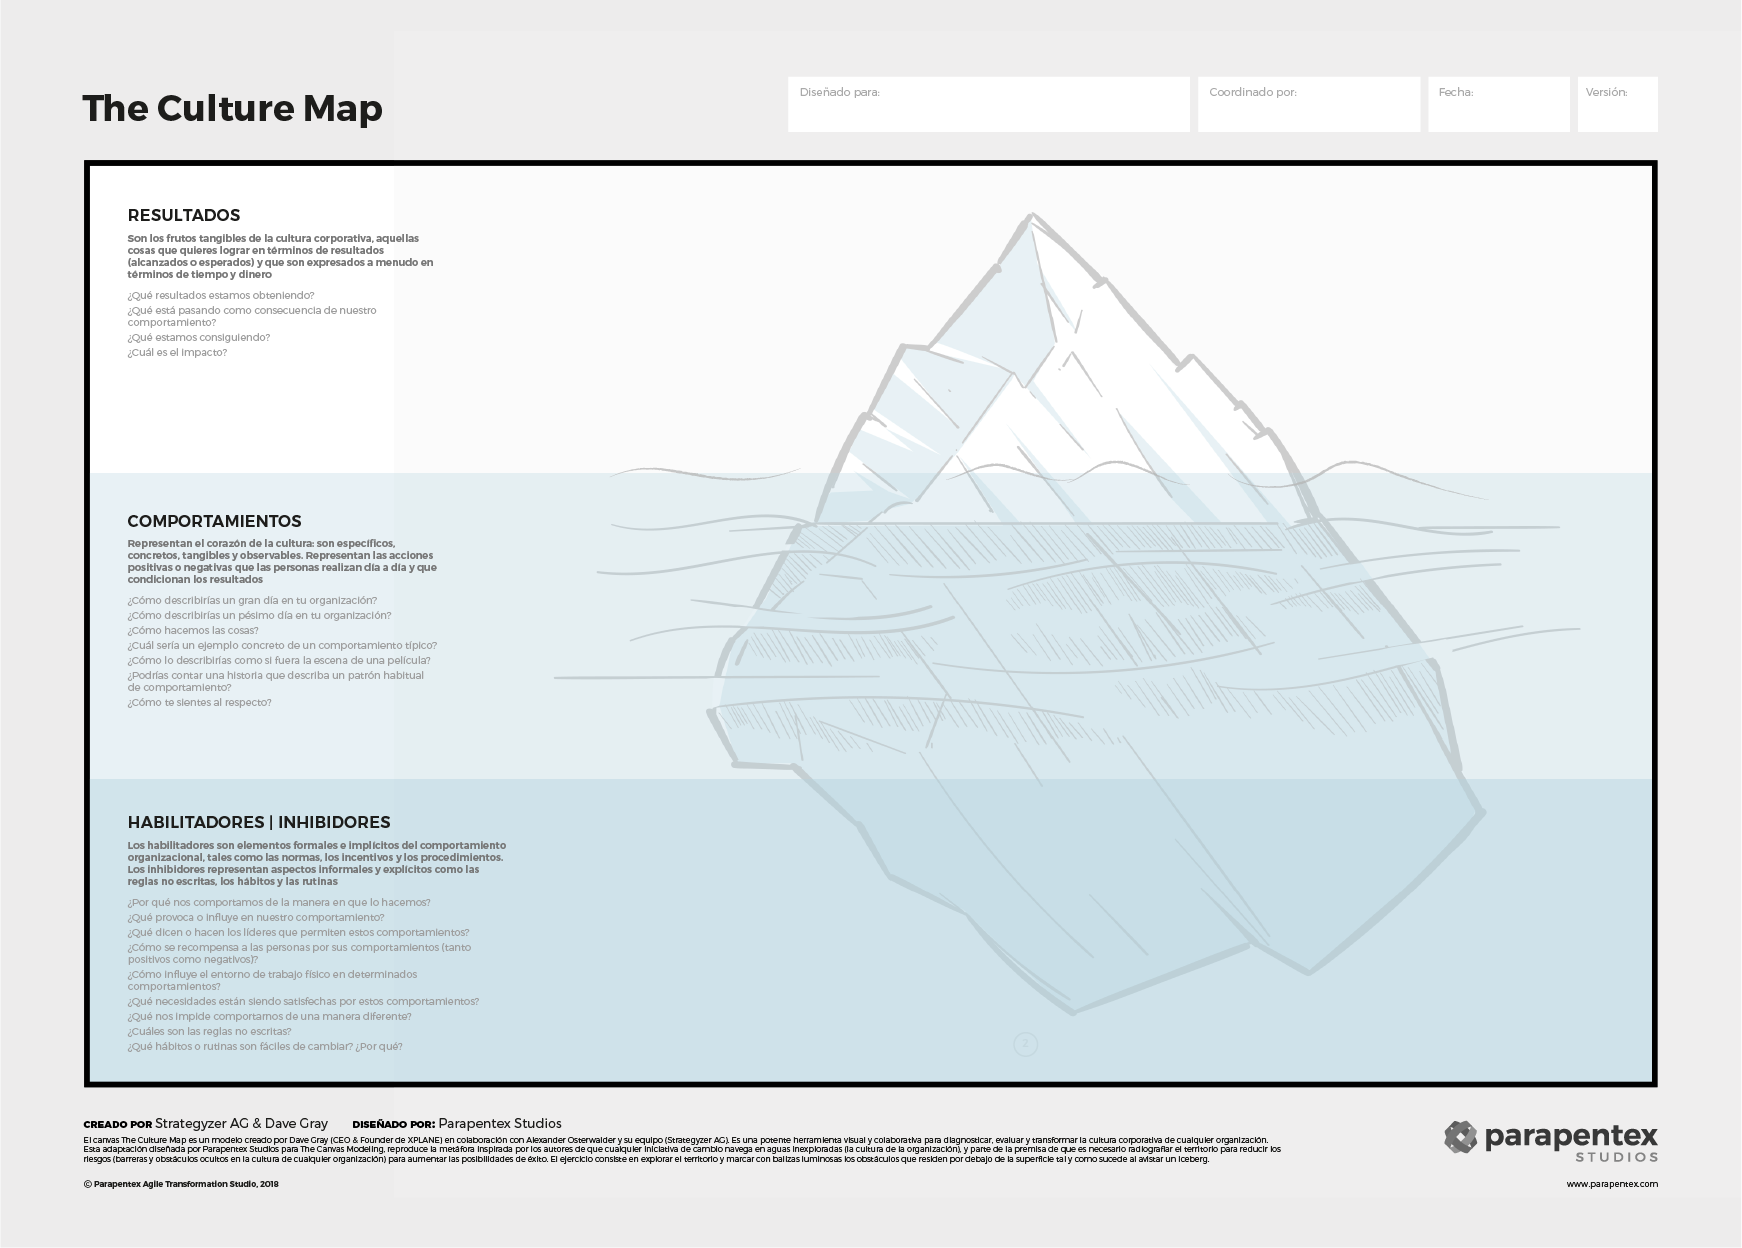 The Culture Map - Powered by Parapentex Studios